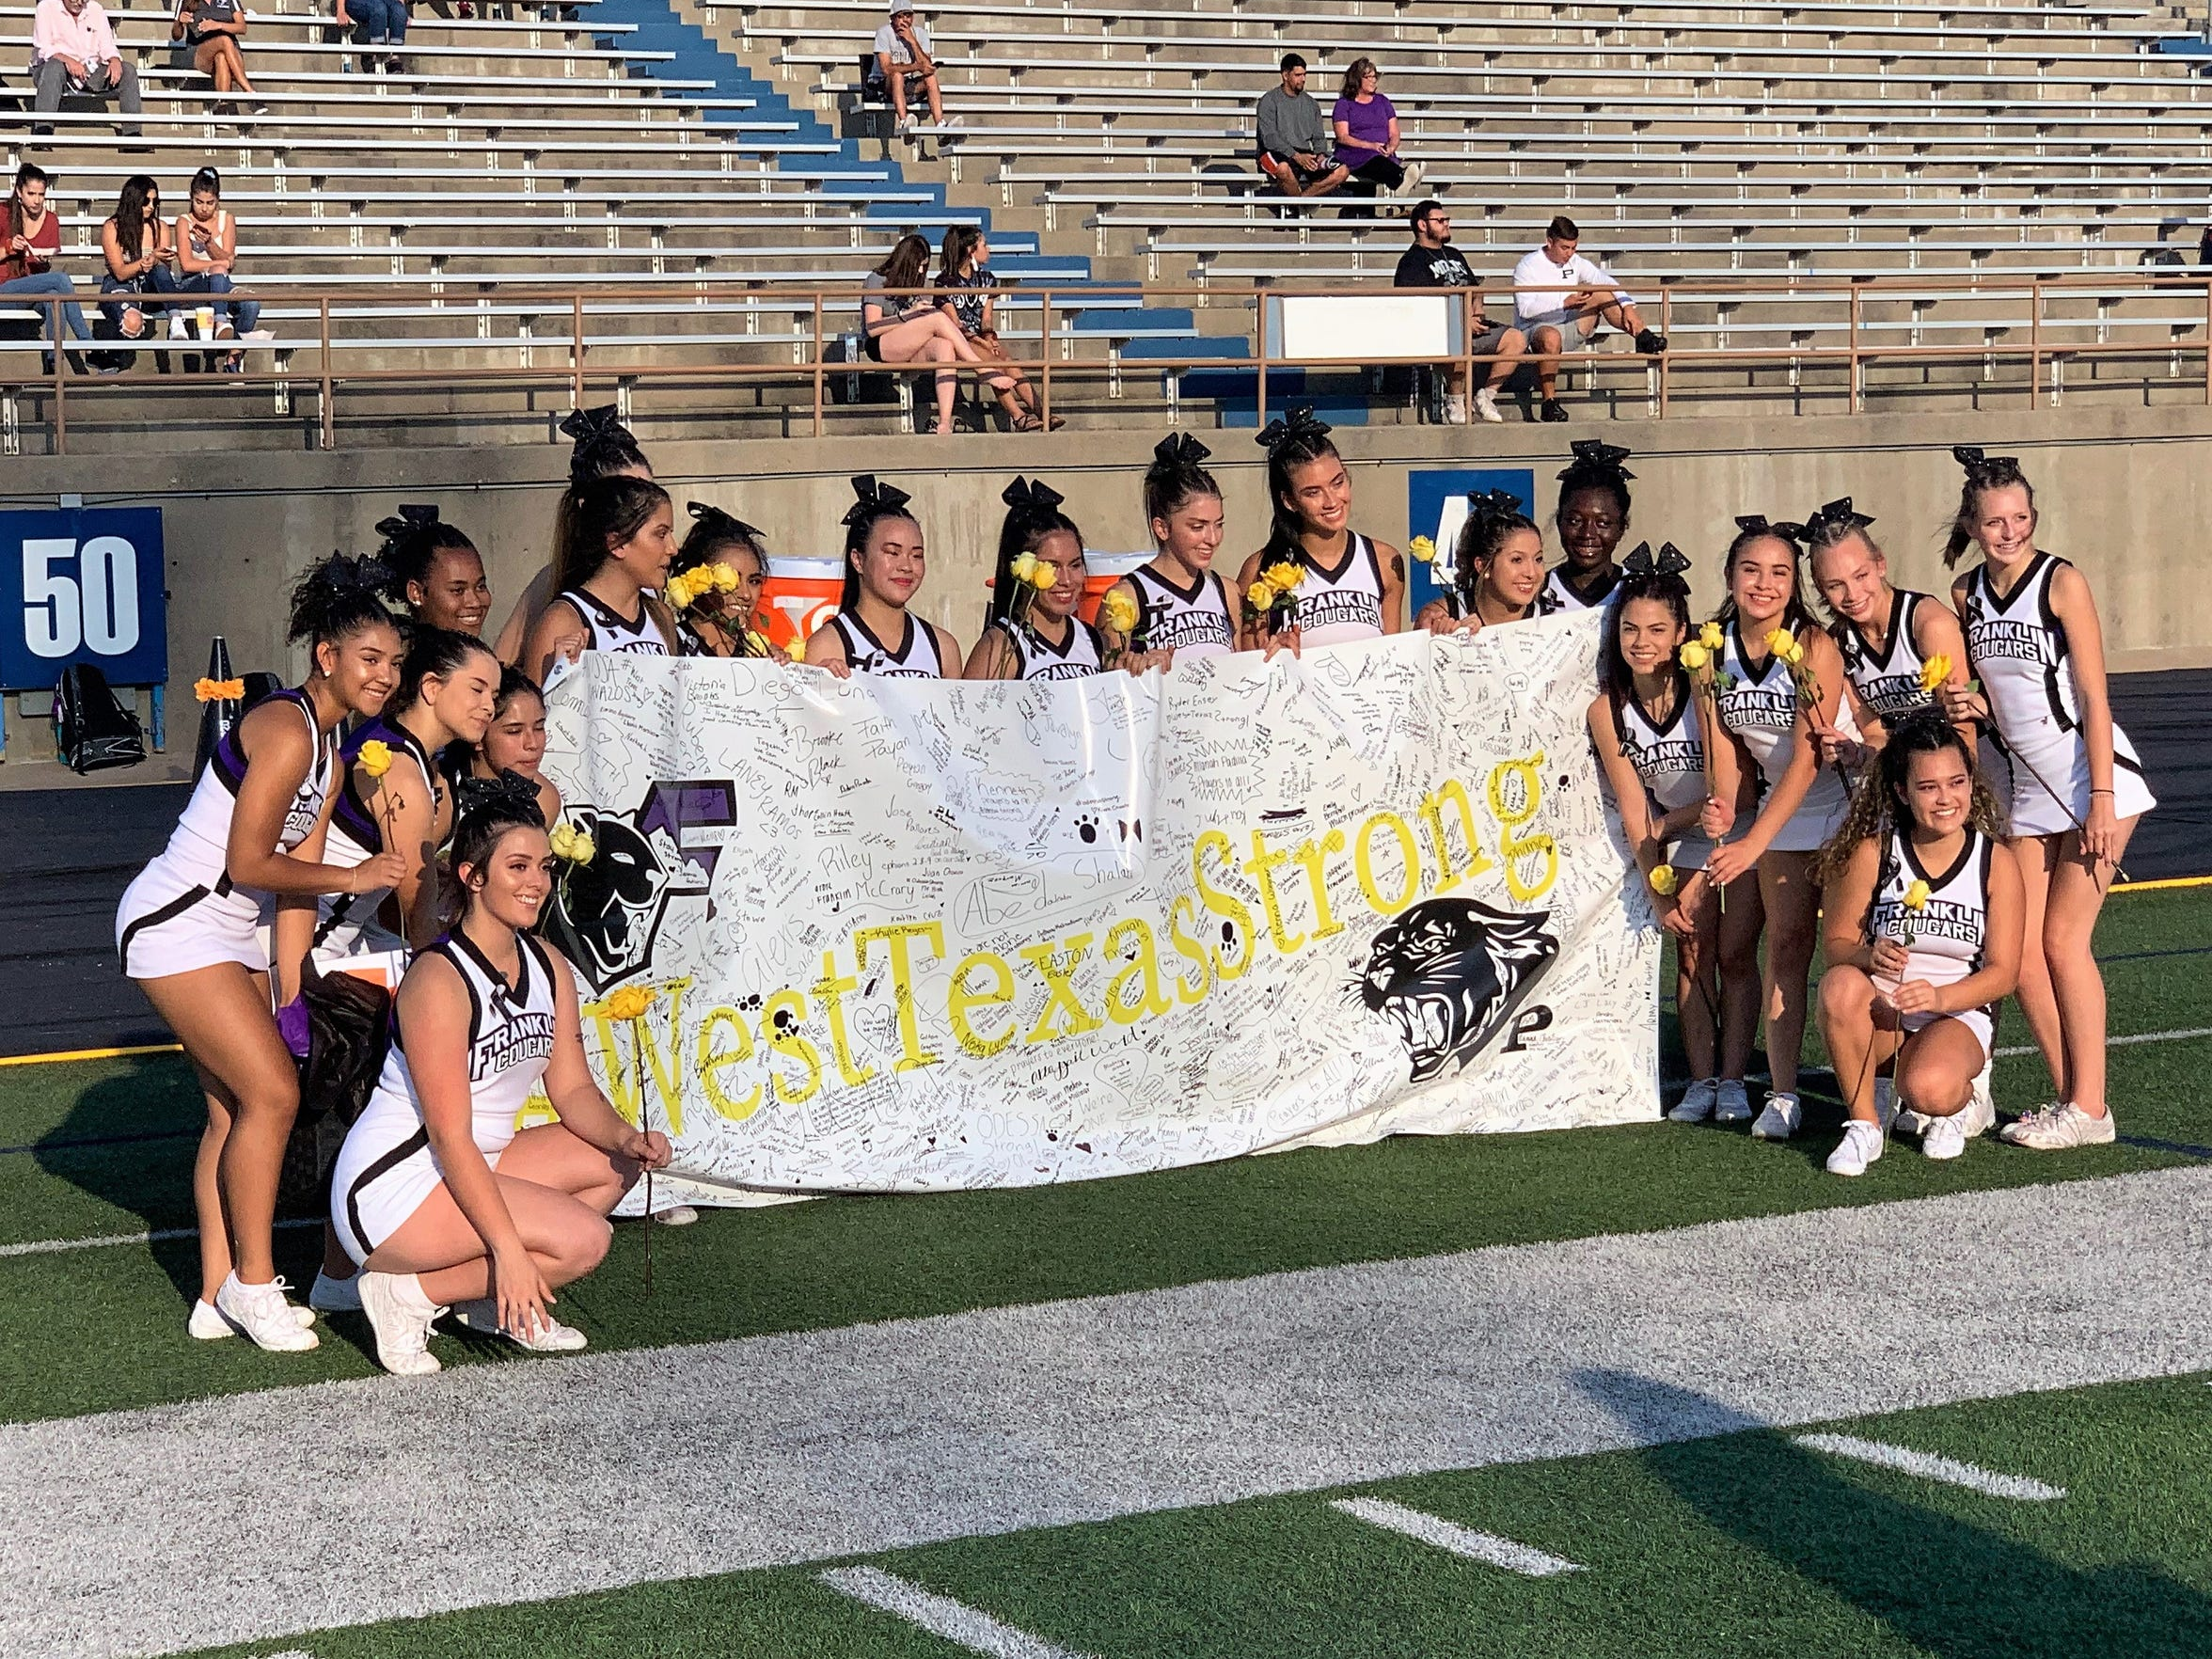 El Paso Franklin cheerleaders pose with the #WestTexasStrong banner and yellow roses presented by the Odessa Permian student body at Ratliff Stadium on Thursday.